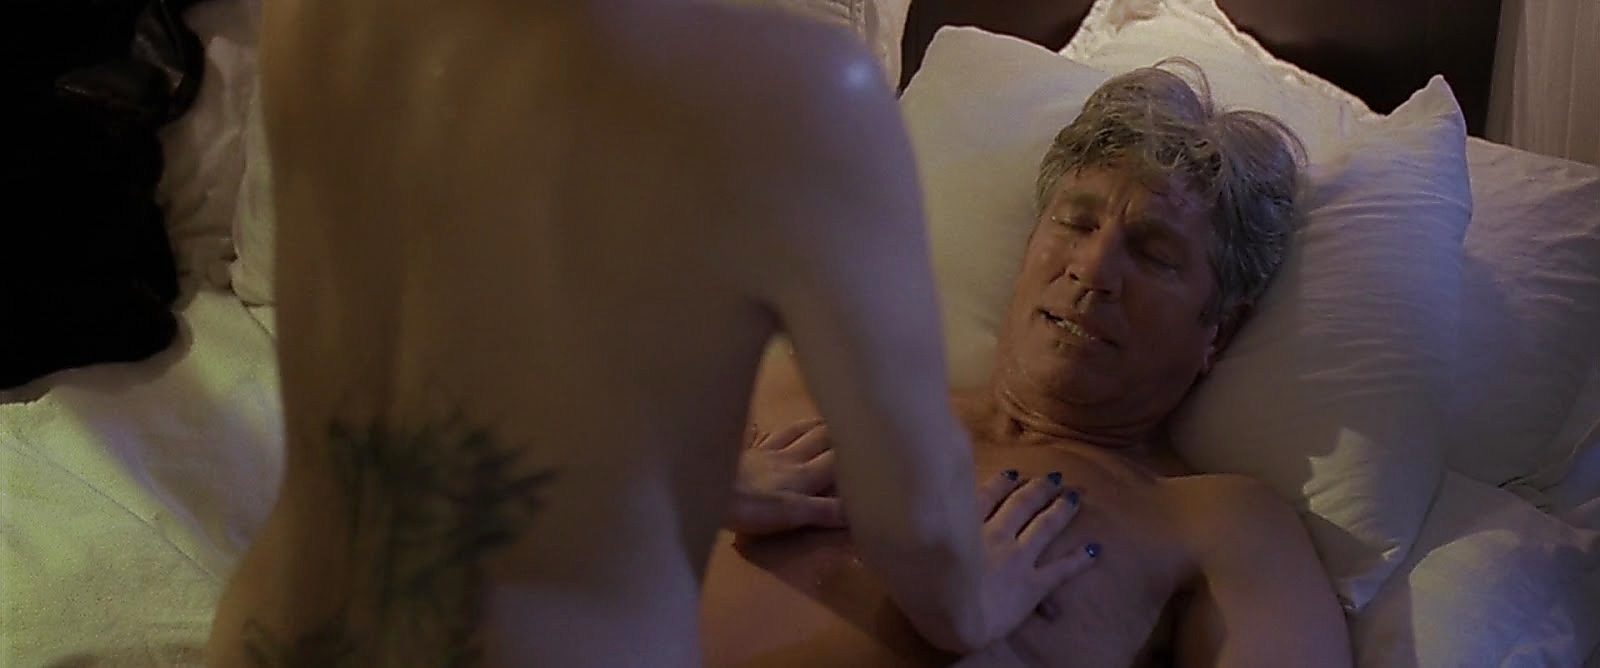 Eric Roberts latest sexy shirtless scene December 6, 2017, 1pm